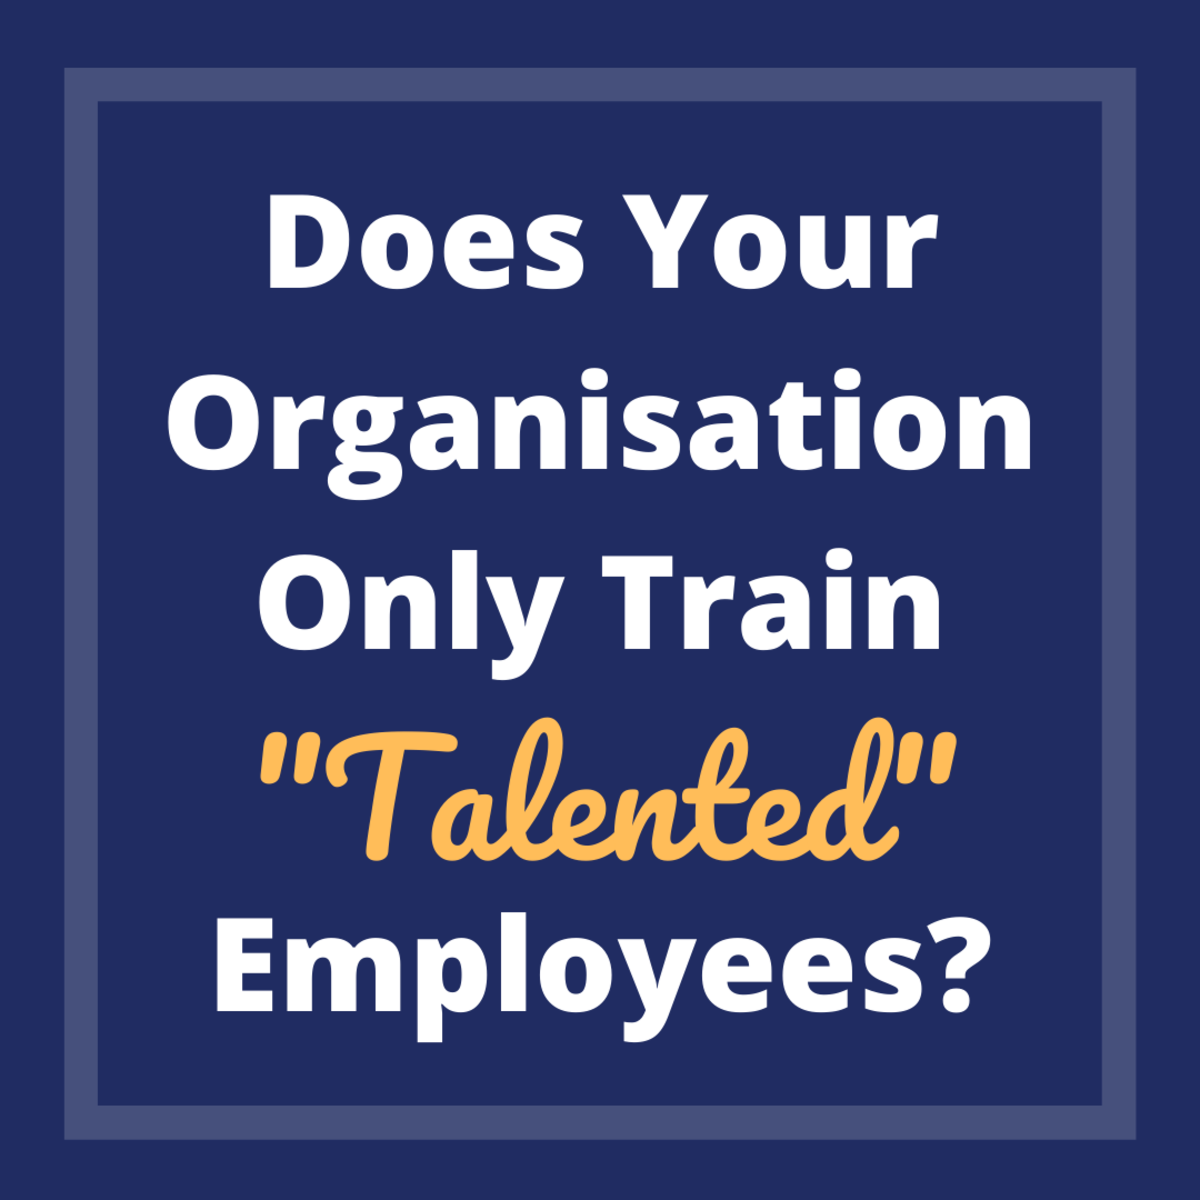 Should an organisation focus training on its top-performing employees or spread training throughout its workforce?